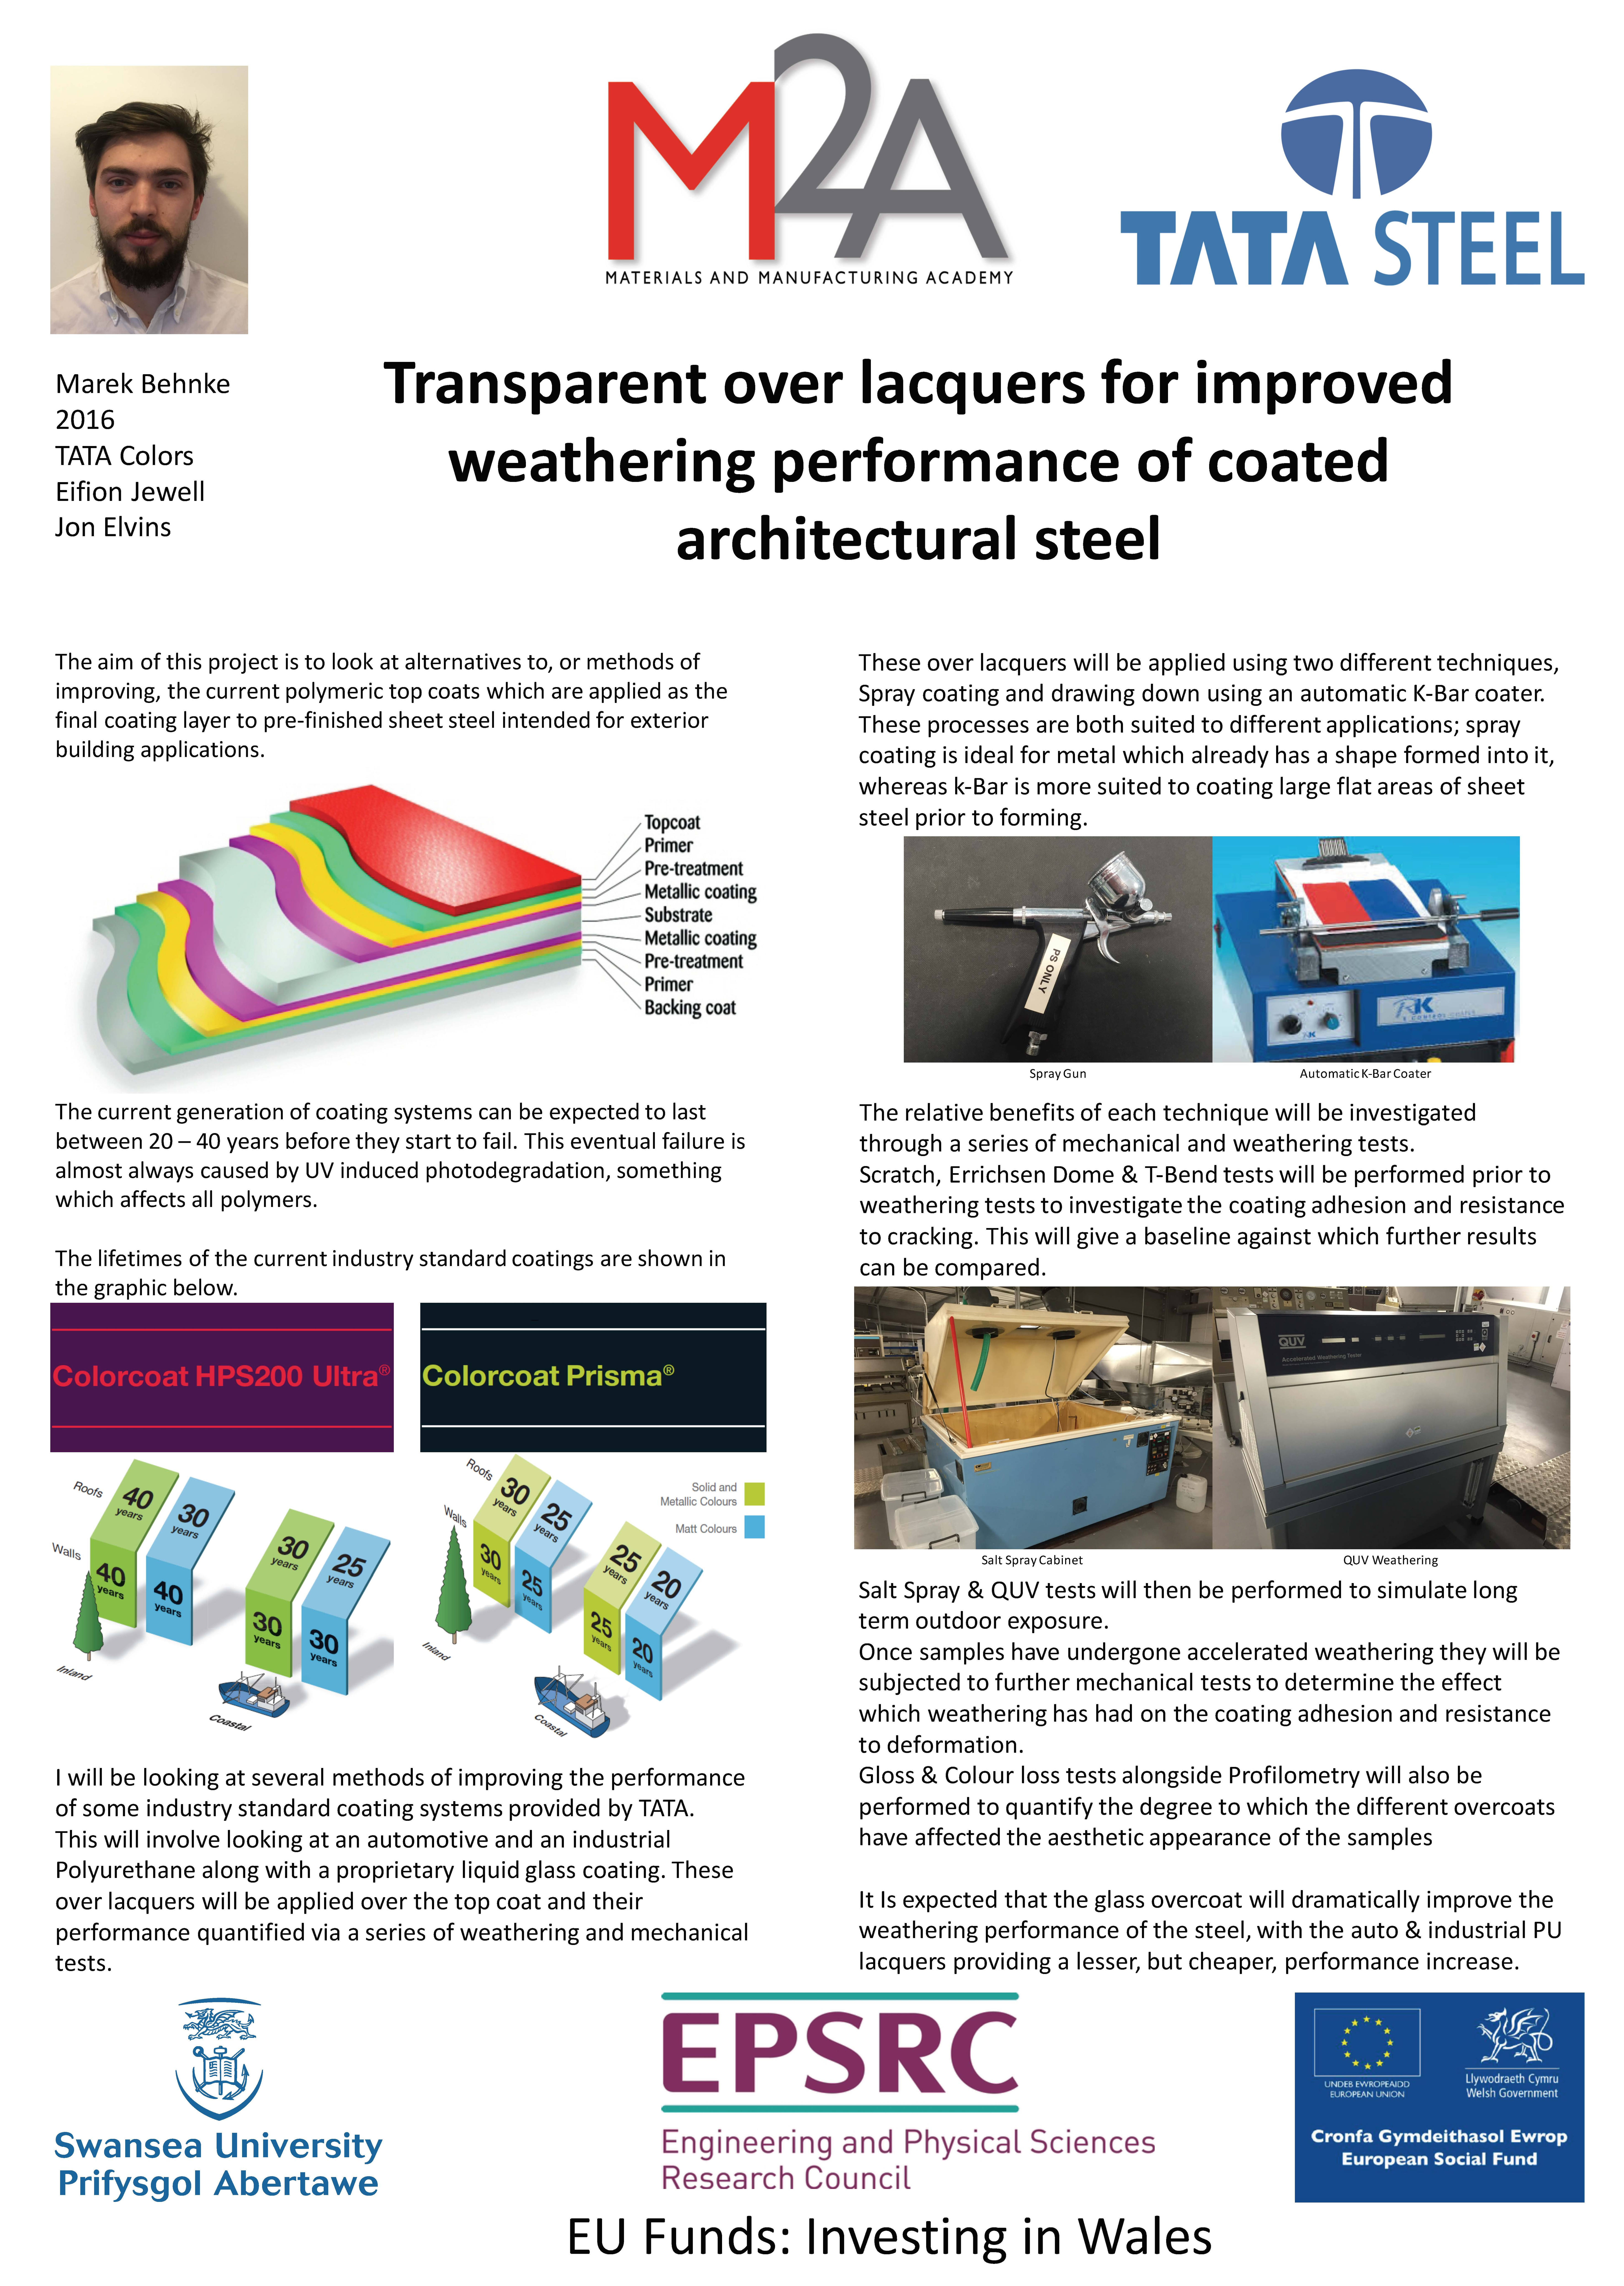 Transparent over lacquers for improved weathering performance of coated architectural steel